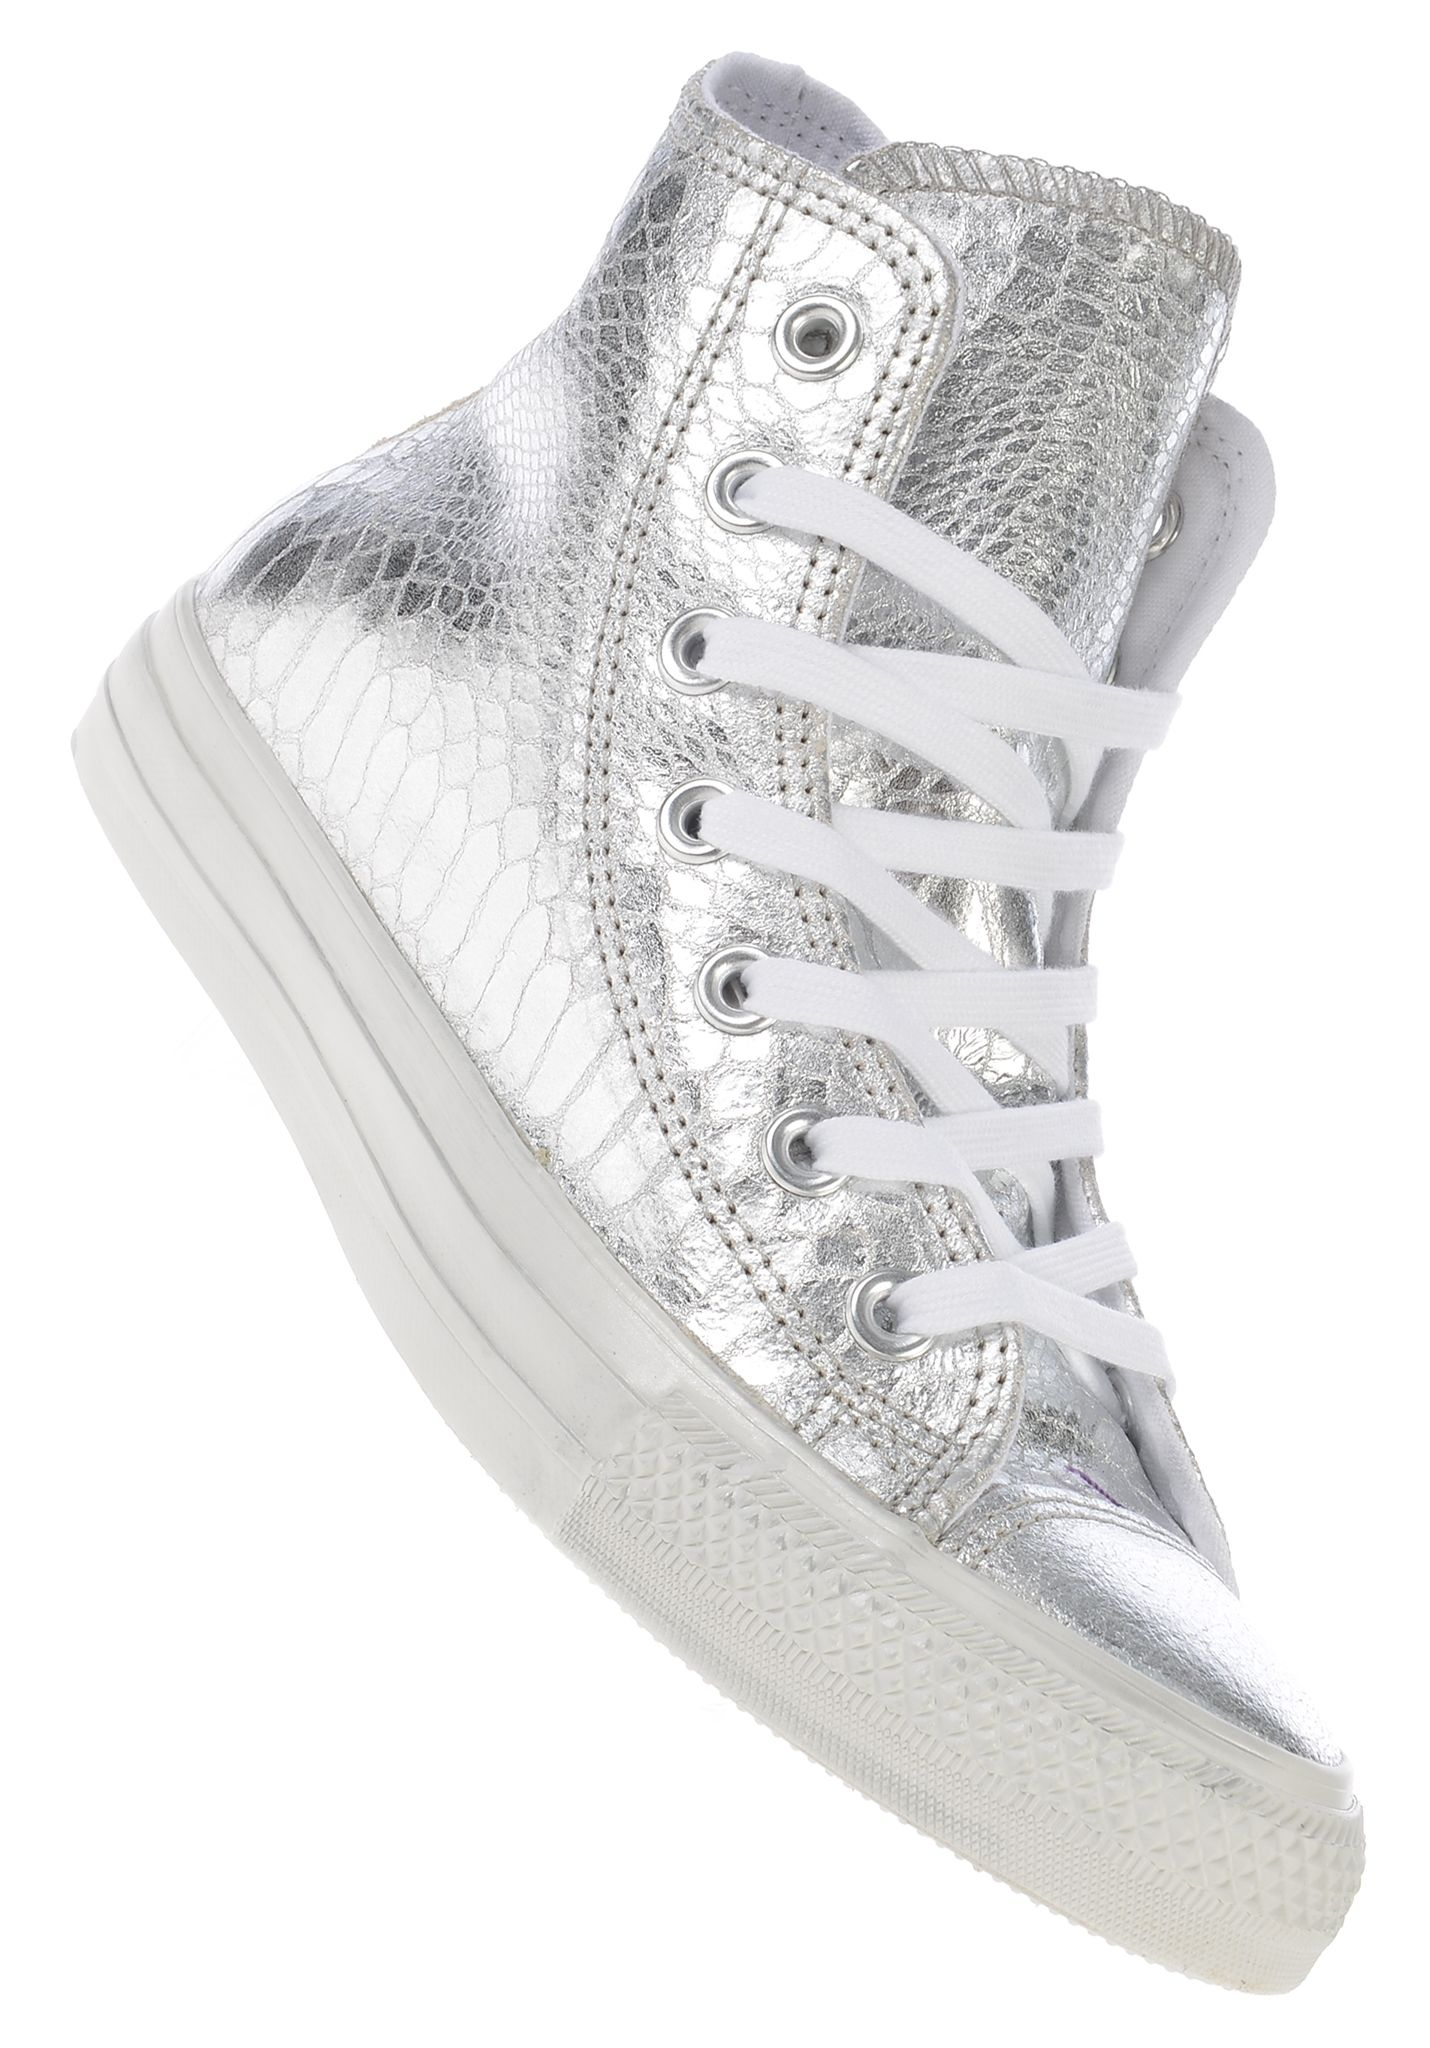 99b1fd9f8aed7 Converse Chuck Taylor All Star Hi Glam Suede - Sneakers für Damen - Silber  - Planet Sports